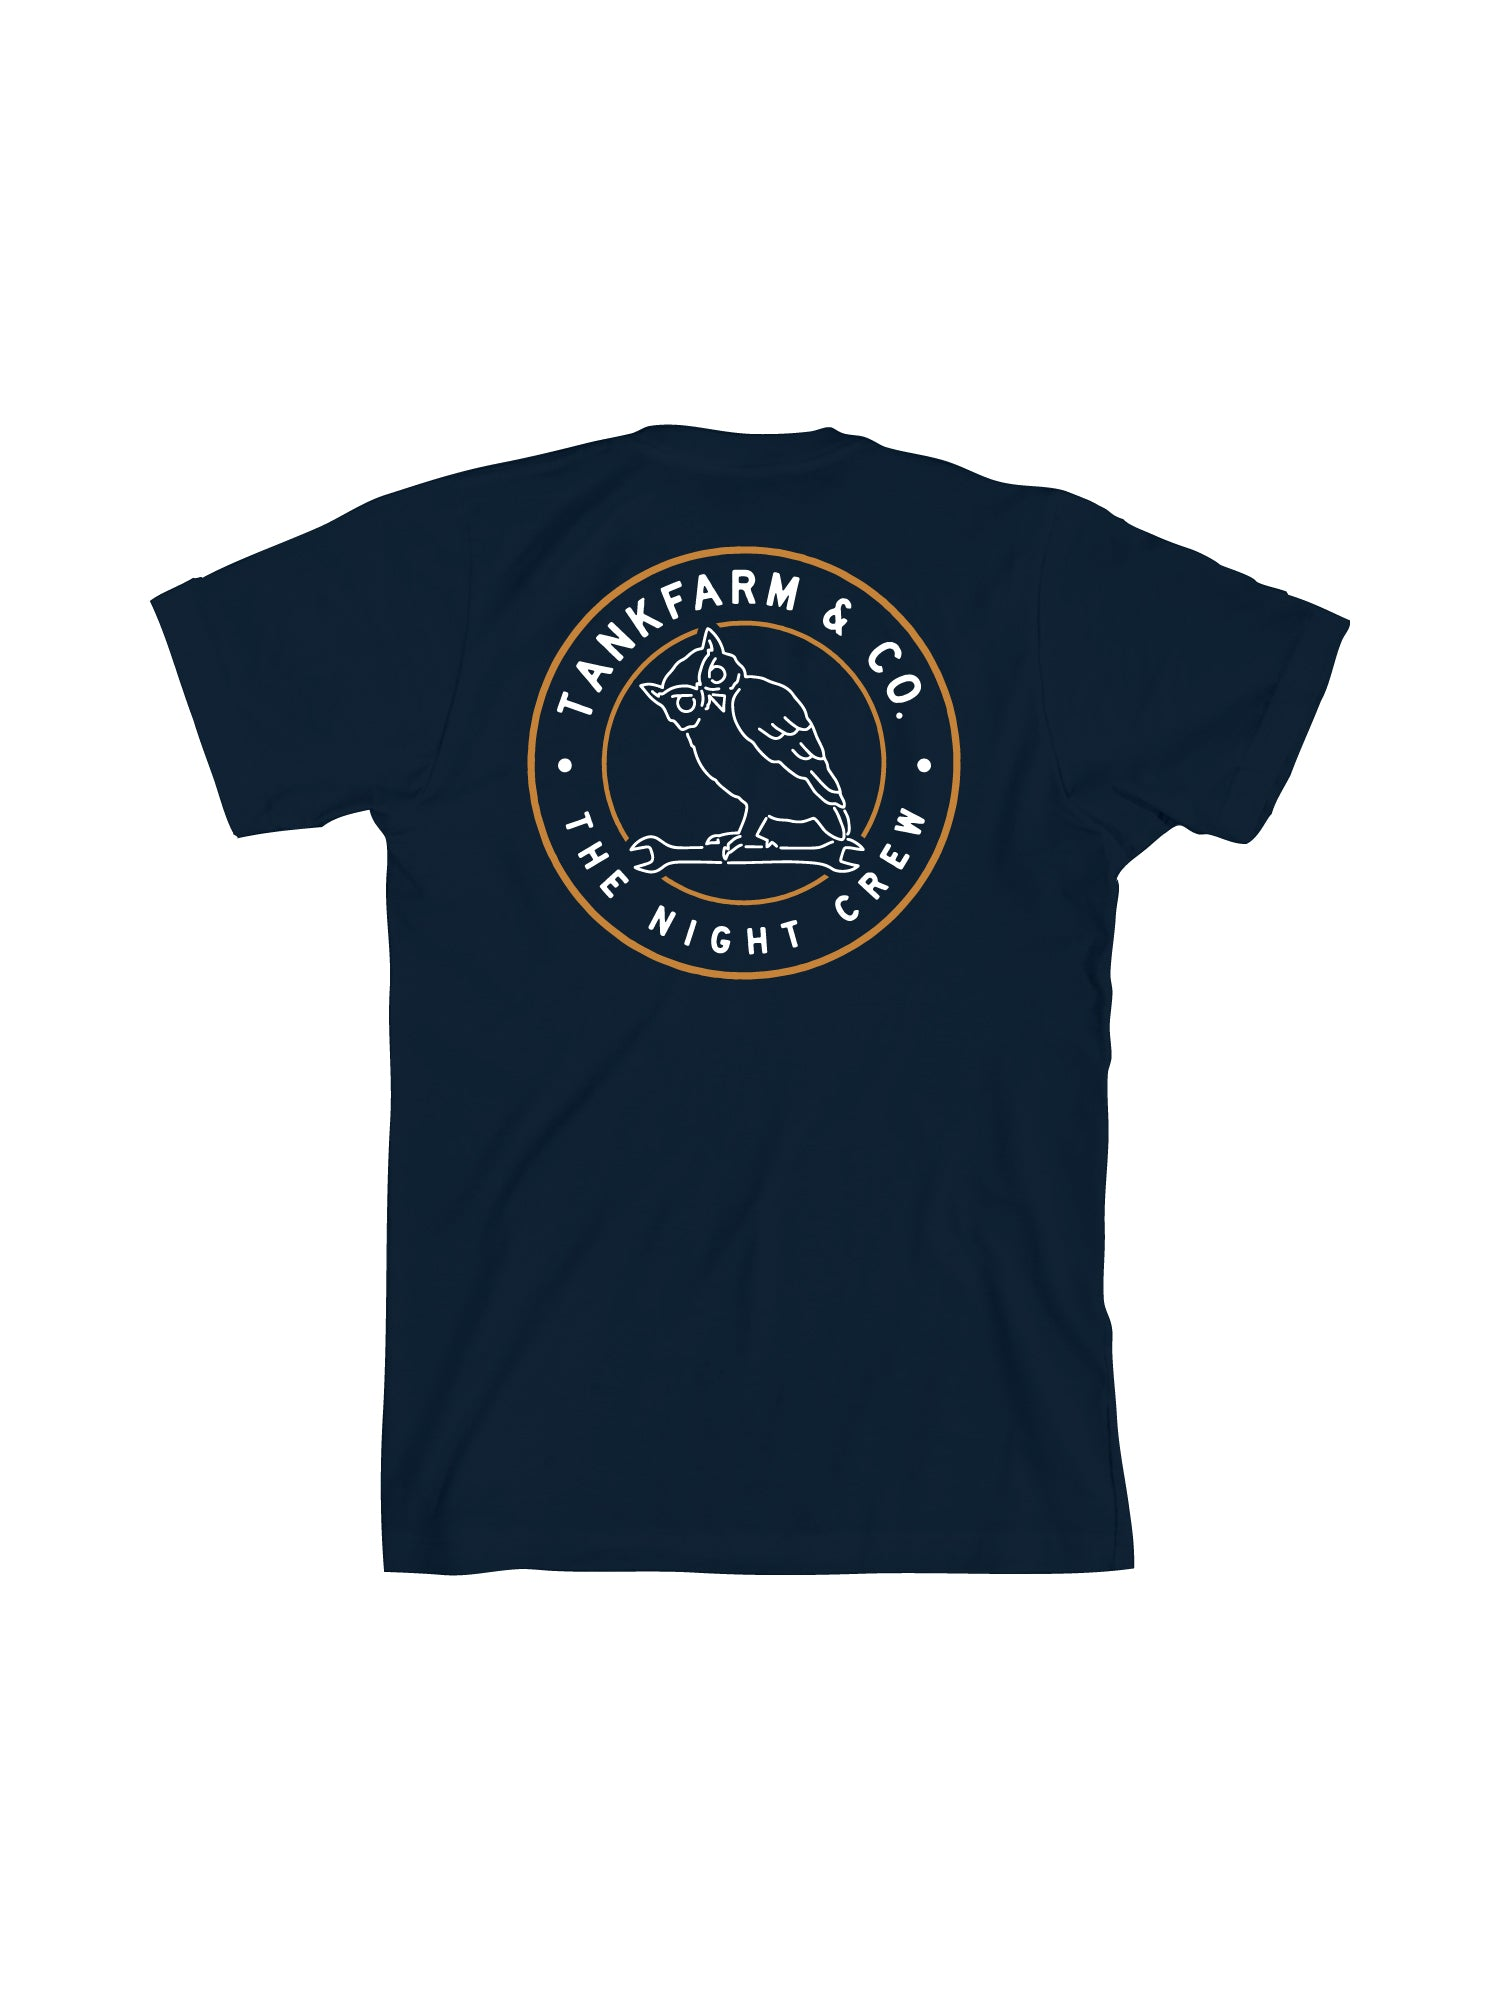 NIGHT CREW STAMP - NAVY - Tankfarm & Co.